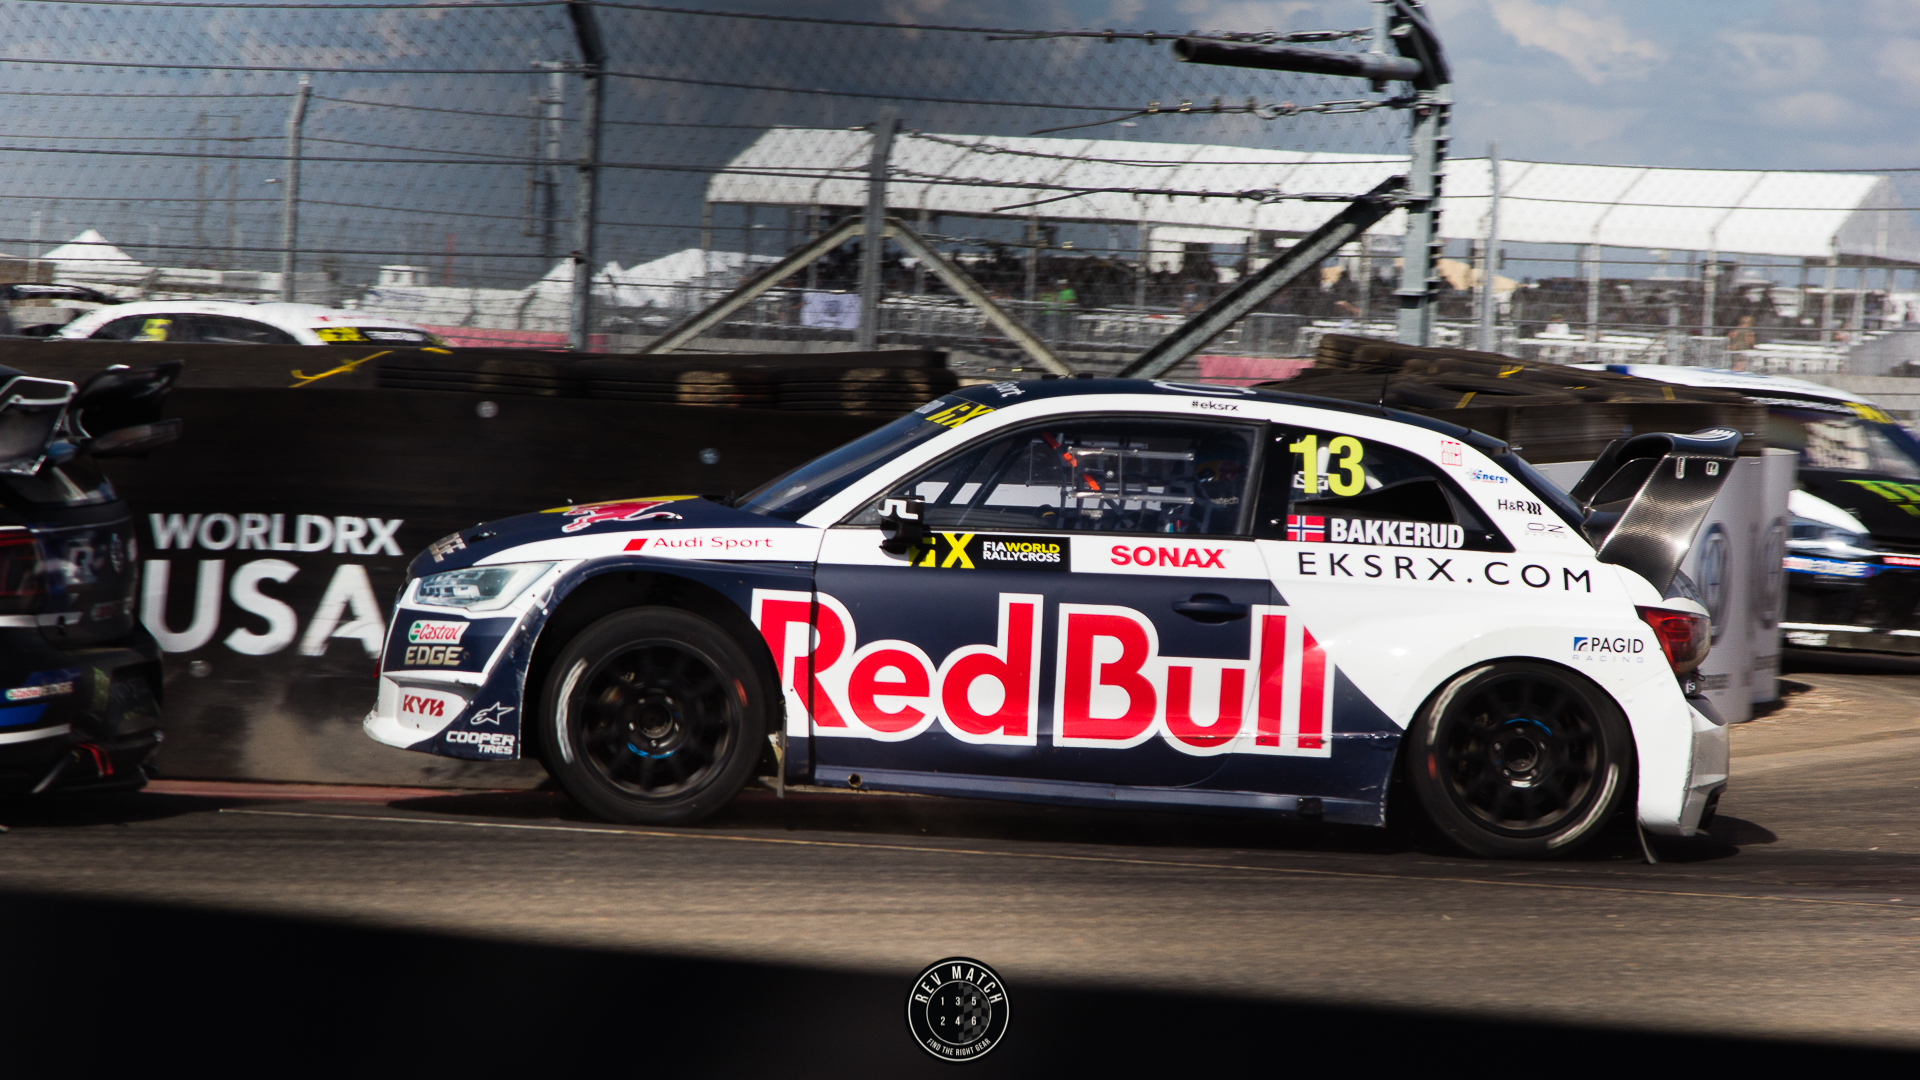 World Rallycross of USA 2018-176.jpg